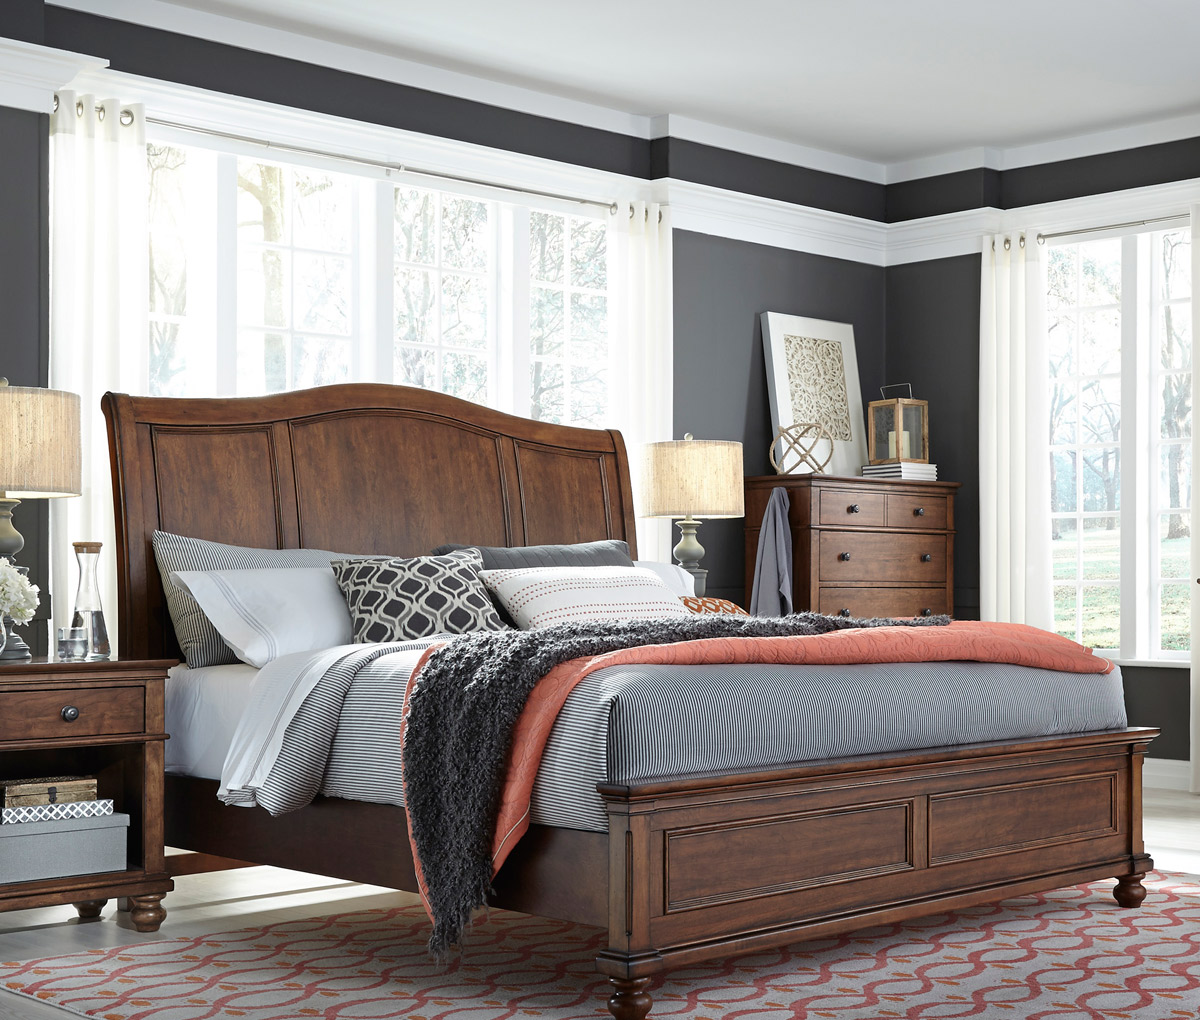 Decorating with Brown and Gray - A Pairing That May Surprise ...